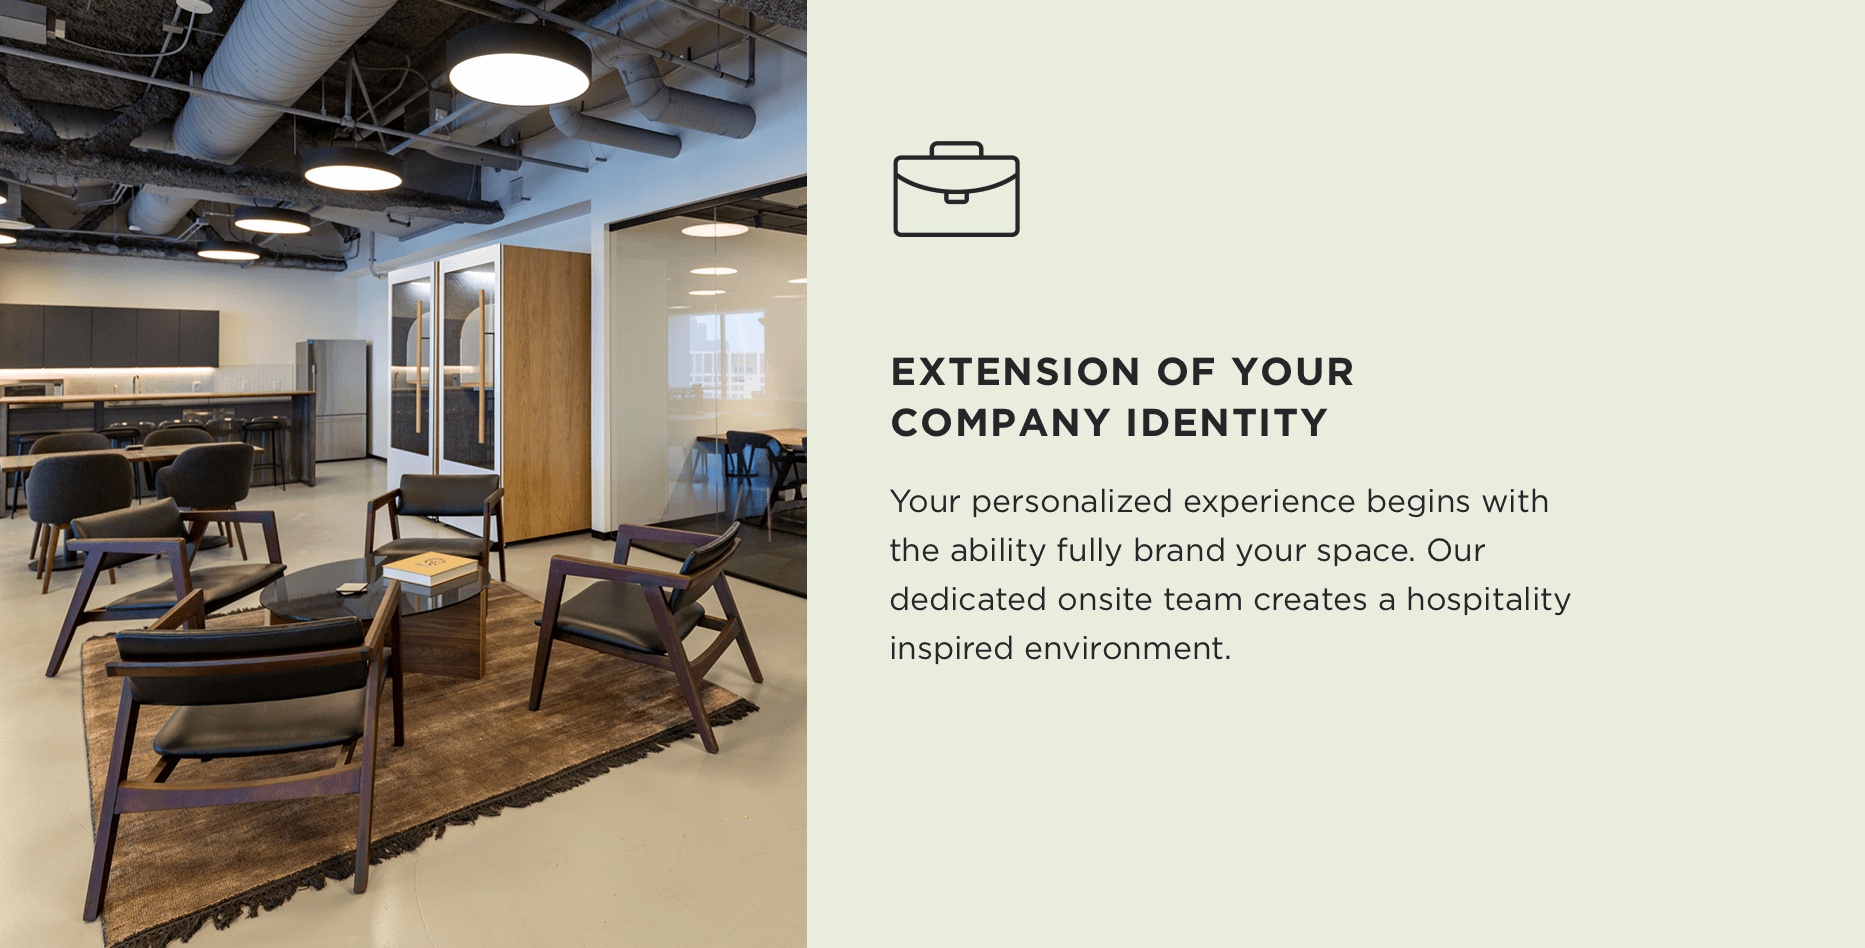 Extension Of Your Company Identity